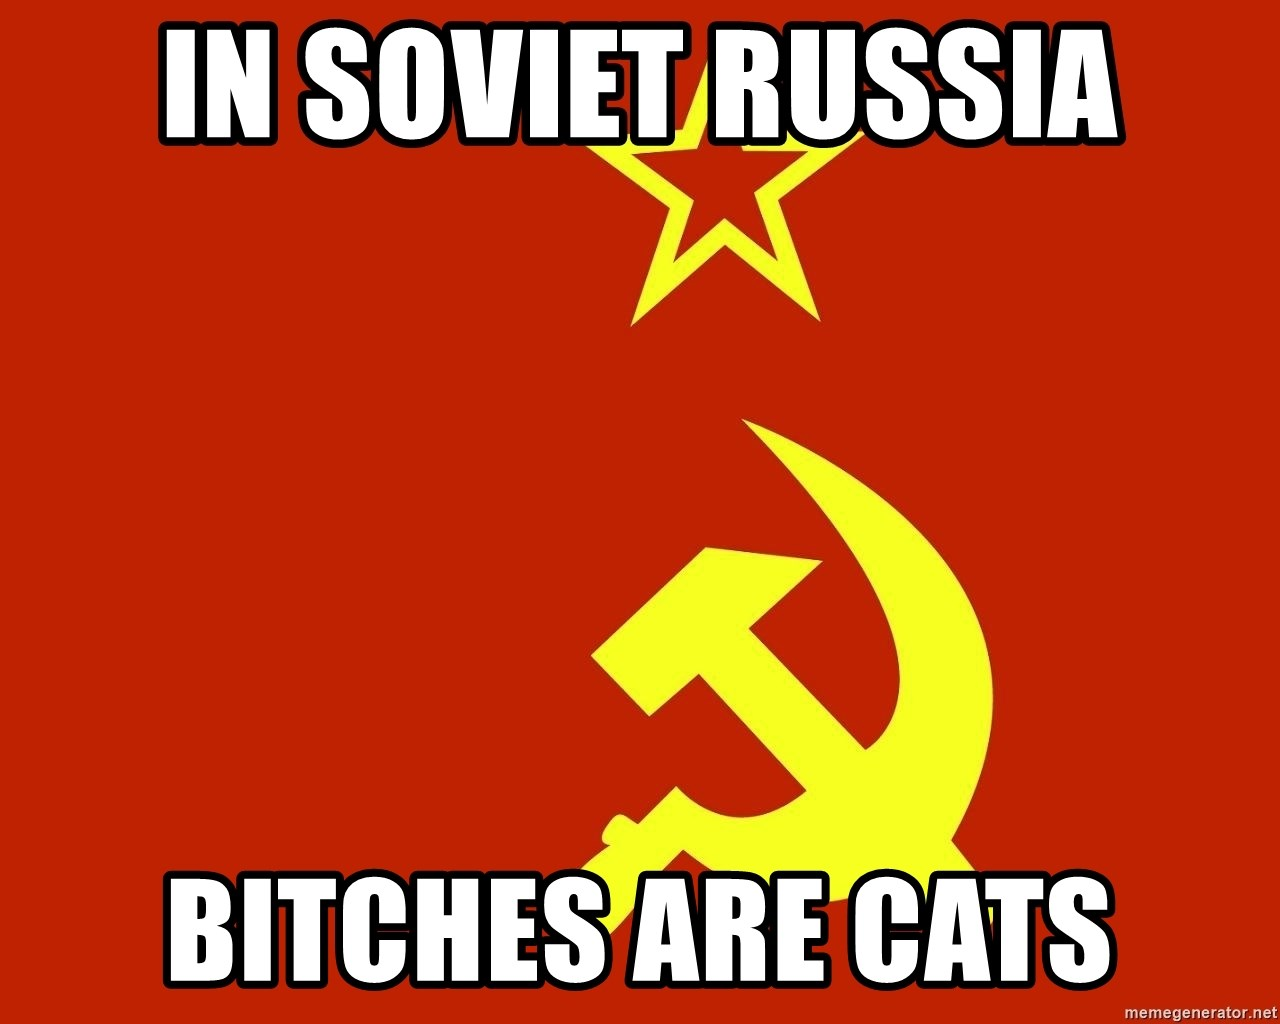 In Soviet Russia - IN SOVIET RUSSIA BITCHES ARE CATS